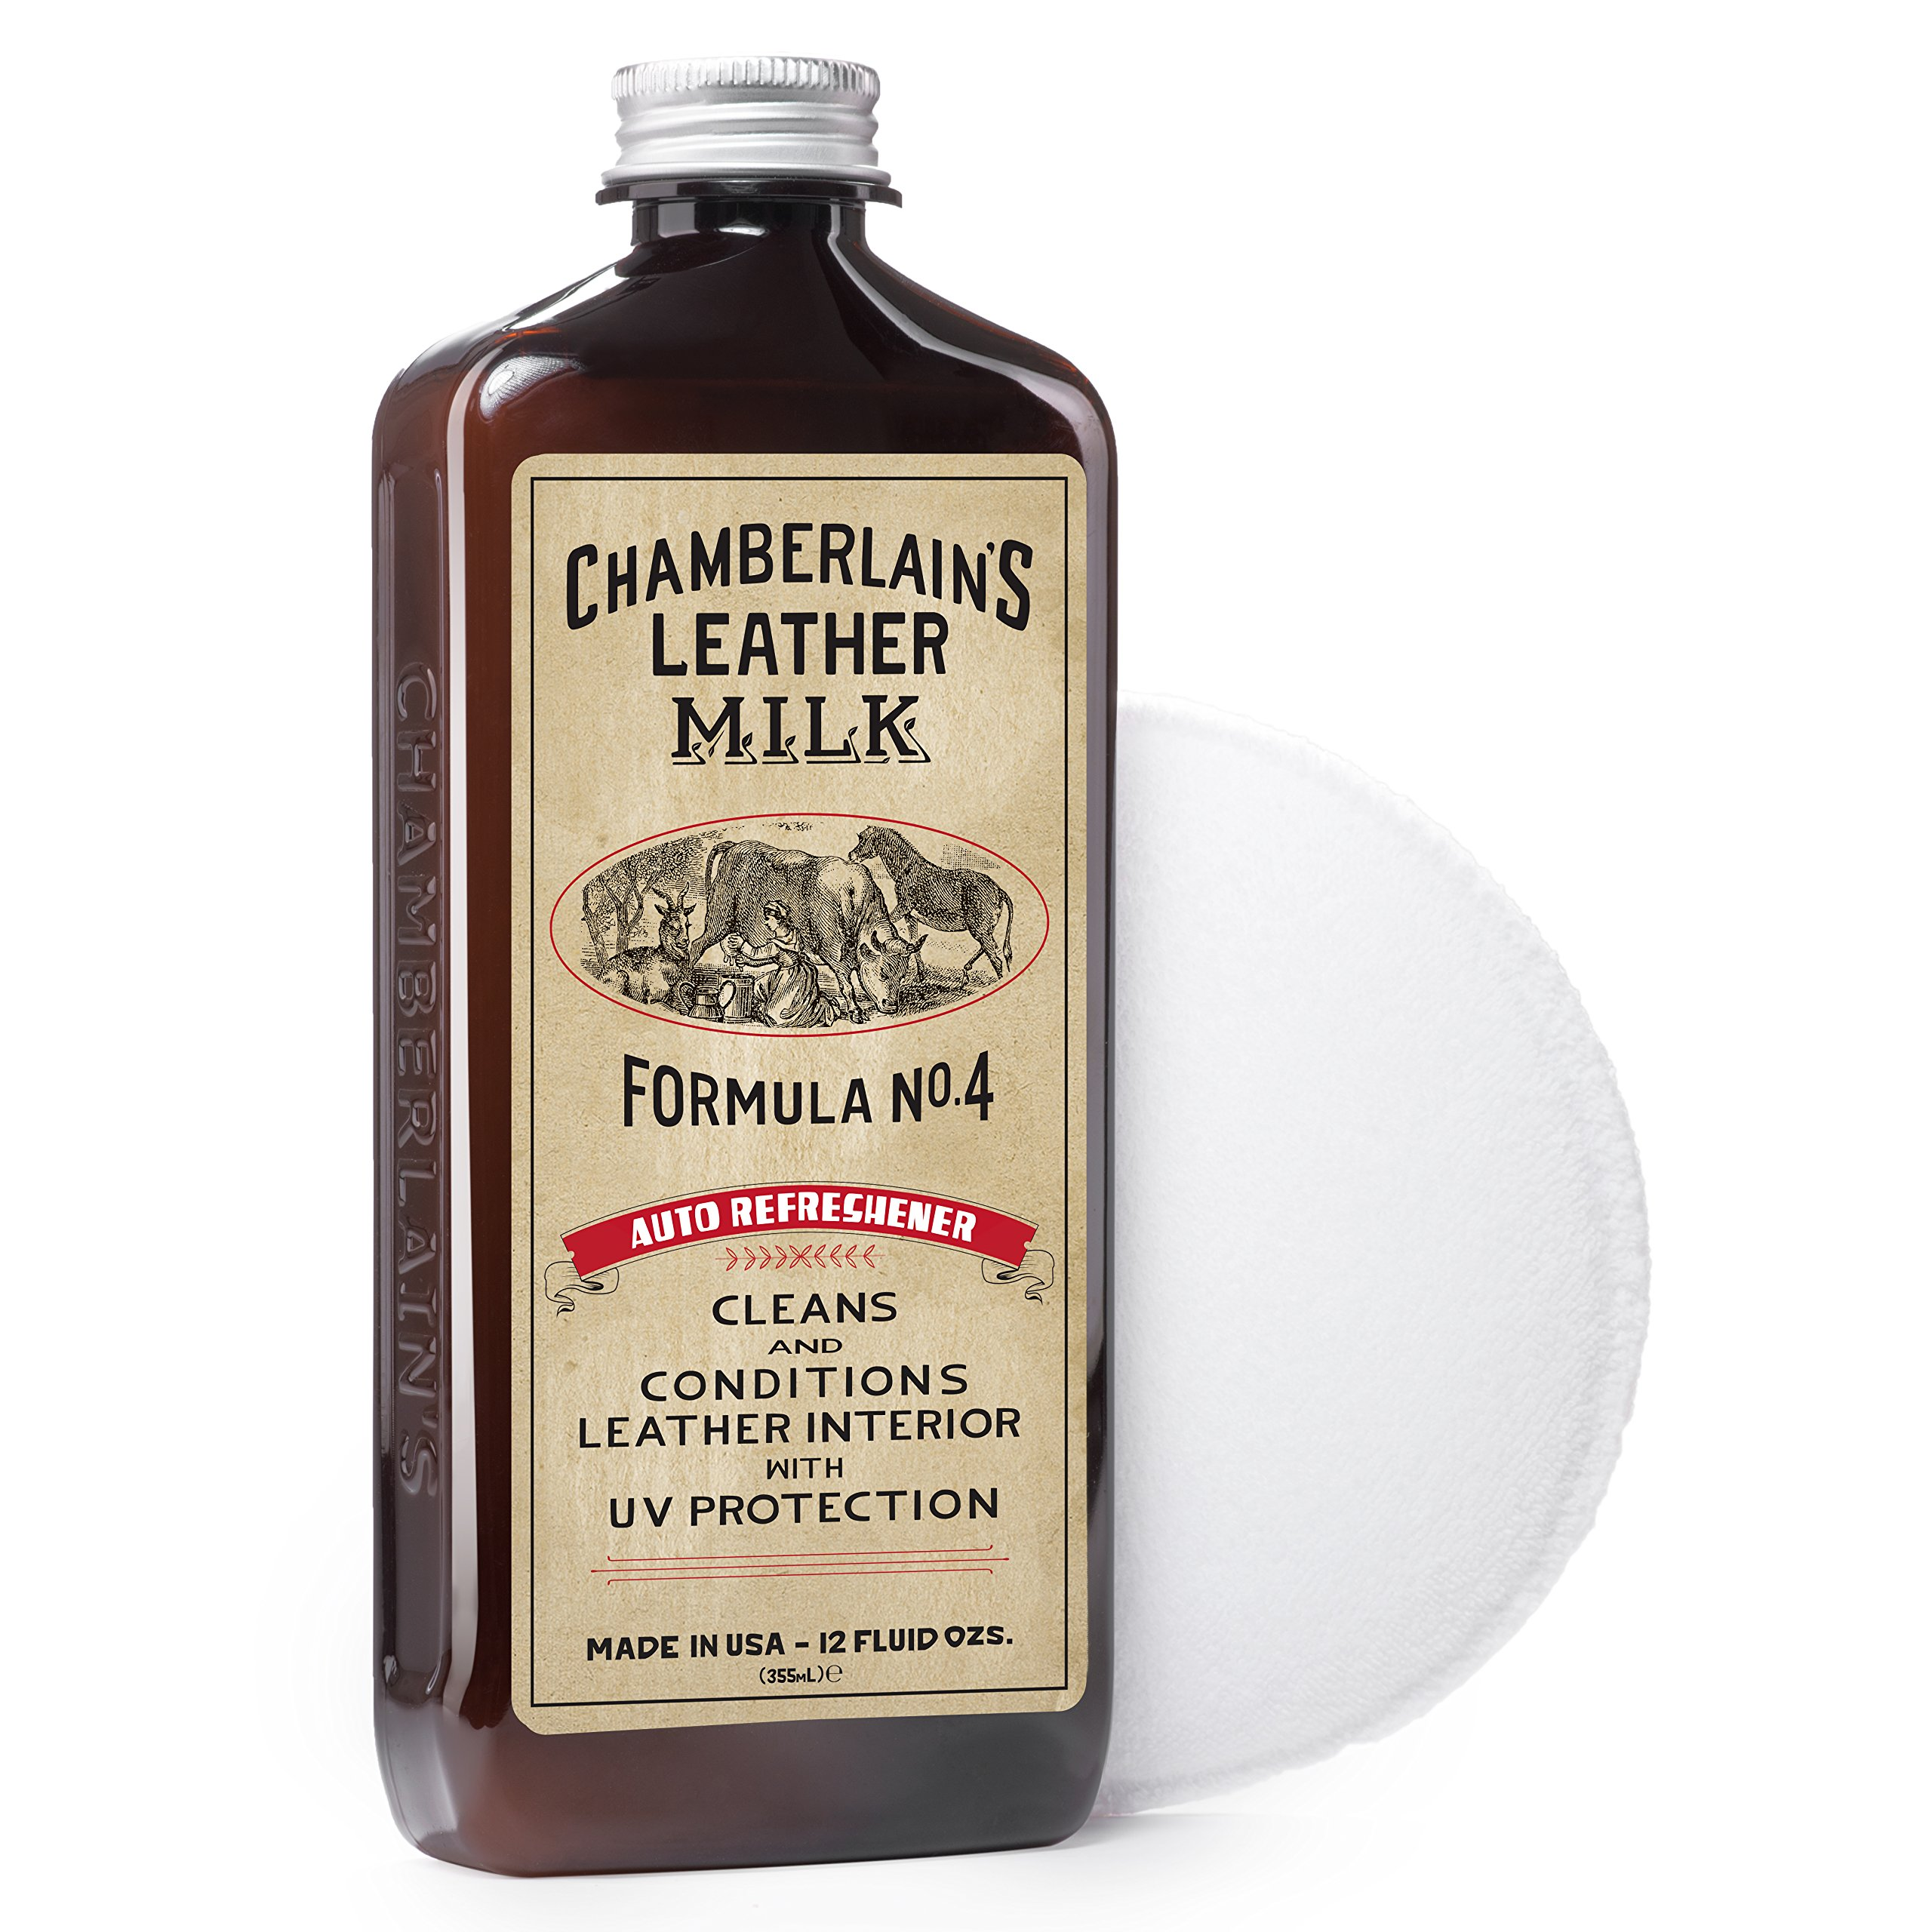 Leather Milk Auto Leather Cleaner & Conditioner Kit (2 Formula Car Detailing Set) - Straight Cleaner No. 2 + Auto Refreshener No. 4 - All Natural, Non-Toxic. Made in USA. Includes 2 Detailing Pads!